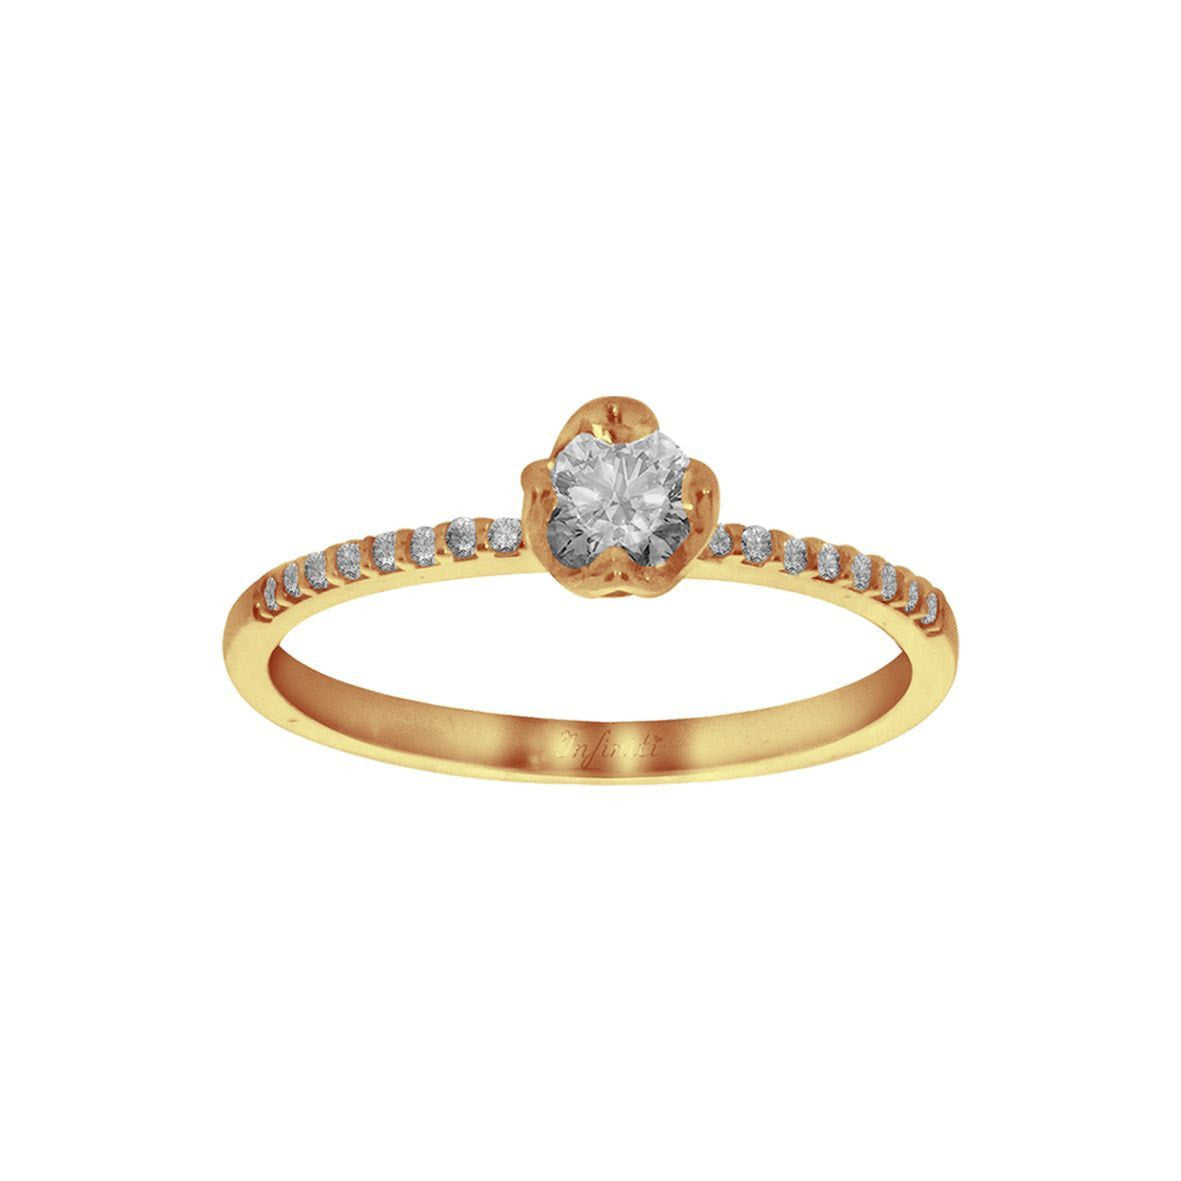 Anillo Oro 14k, Zirconia Central 4 mm y Laterales 0.50 mm